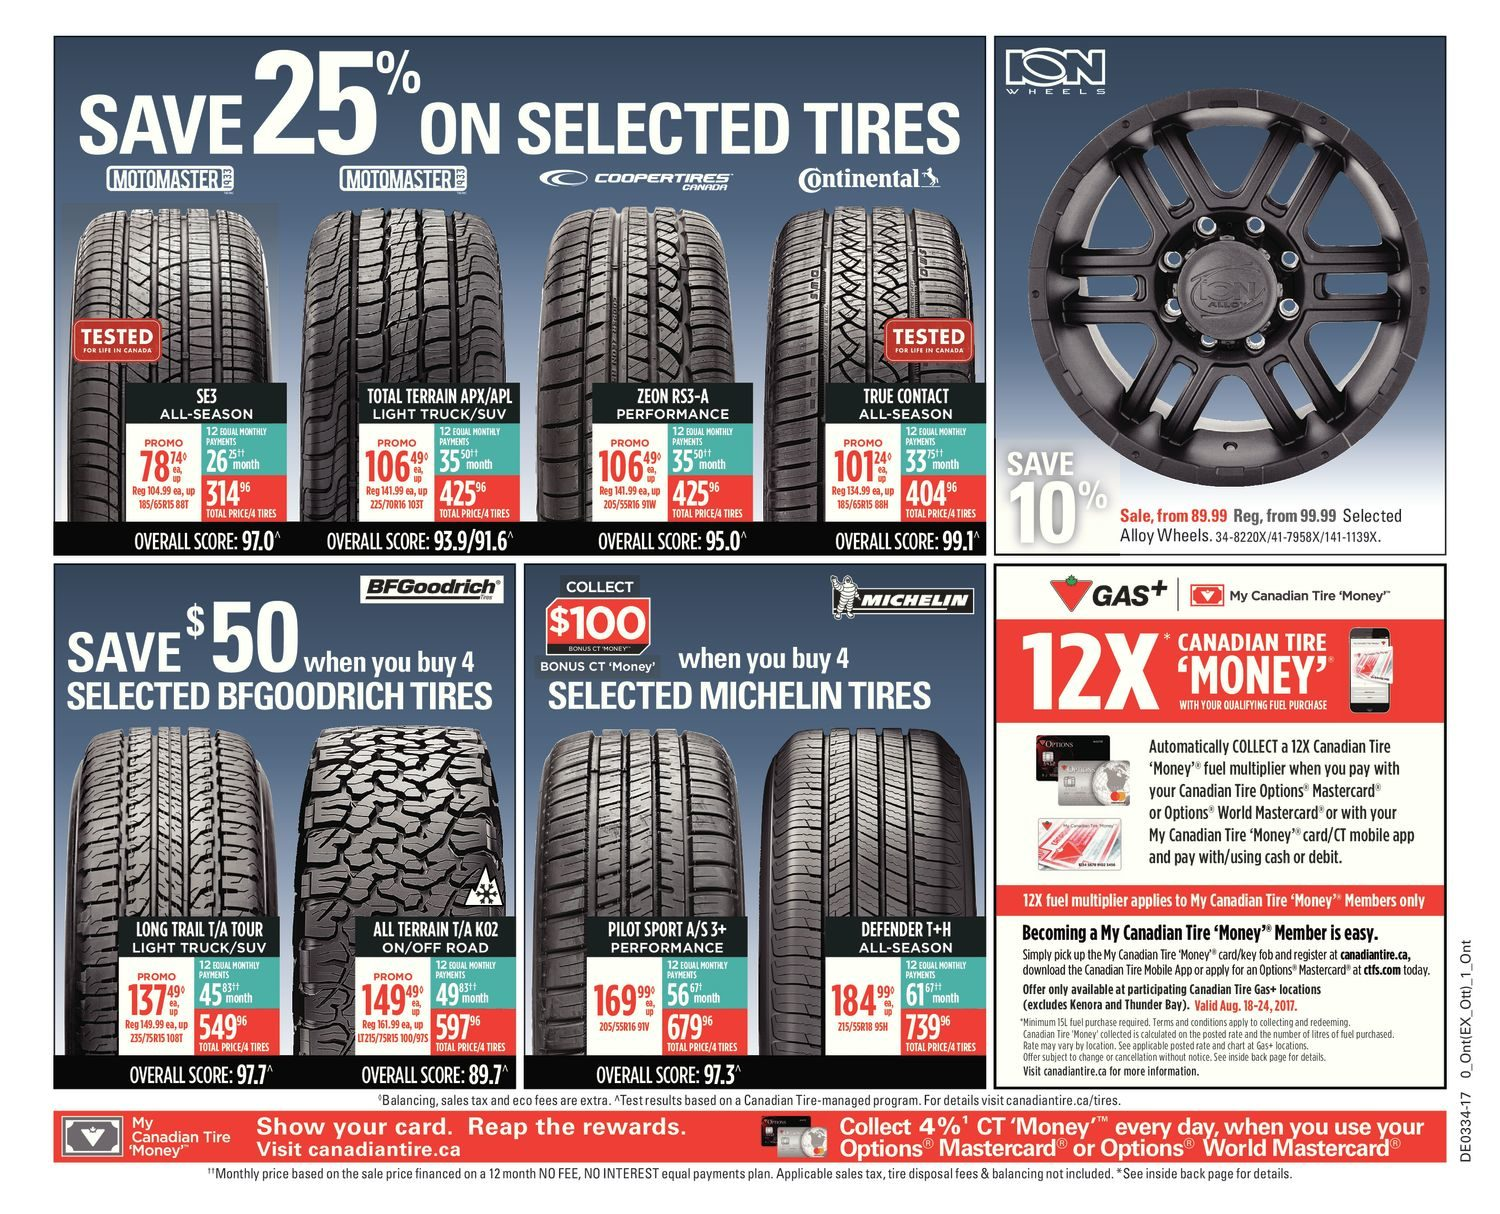 Canadian Tire Weekly Flyer - Weekly - Back to School - Aug 18 u2013 24 - RedFlagDeals.com & Canadian Tire Weekly Flyer - Weekly - Back to School - Aug 18 u2013 24 ...